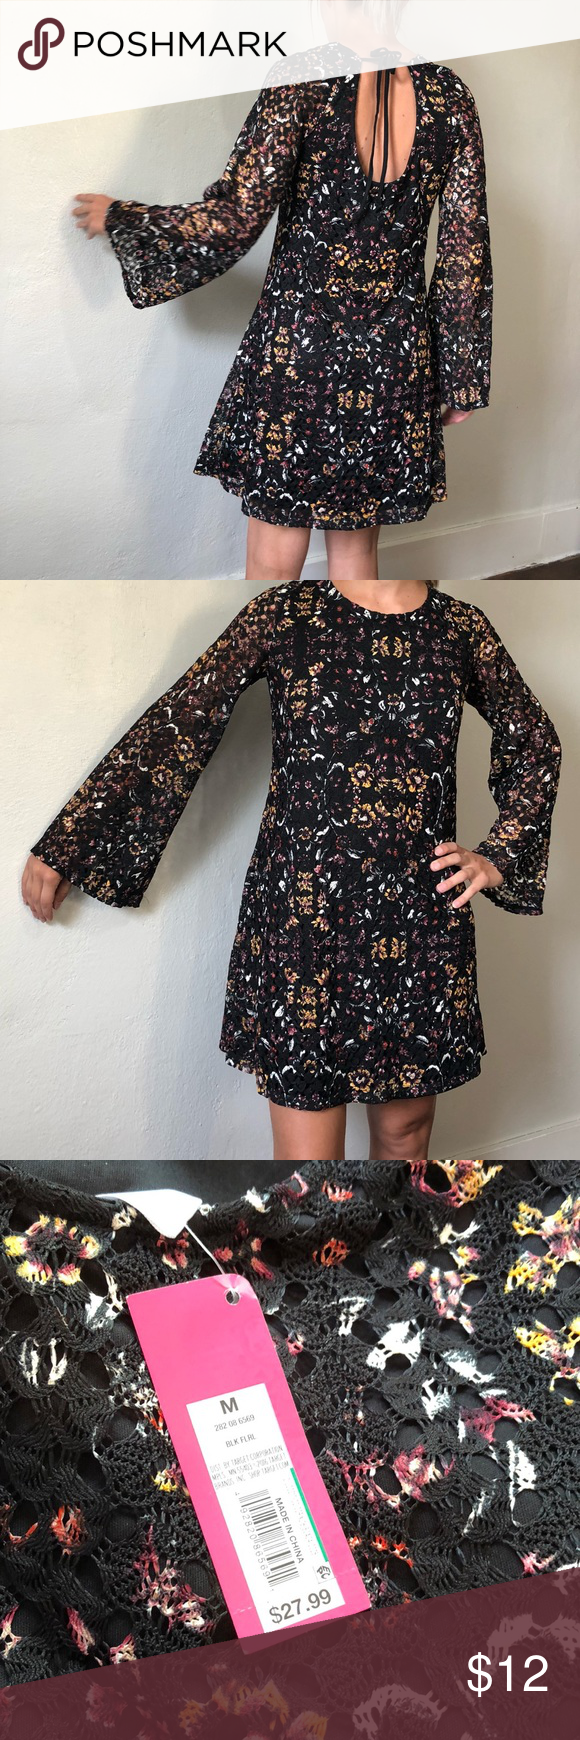 New long sleeved lace dress from target nwt my posh picks